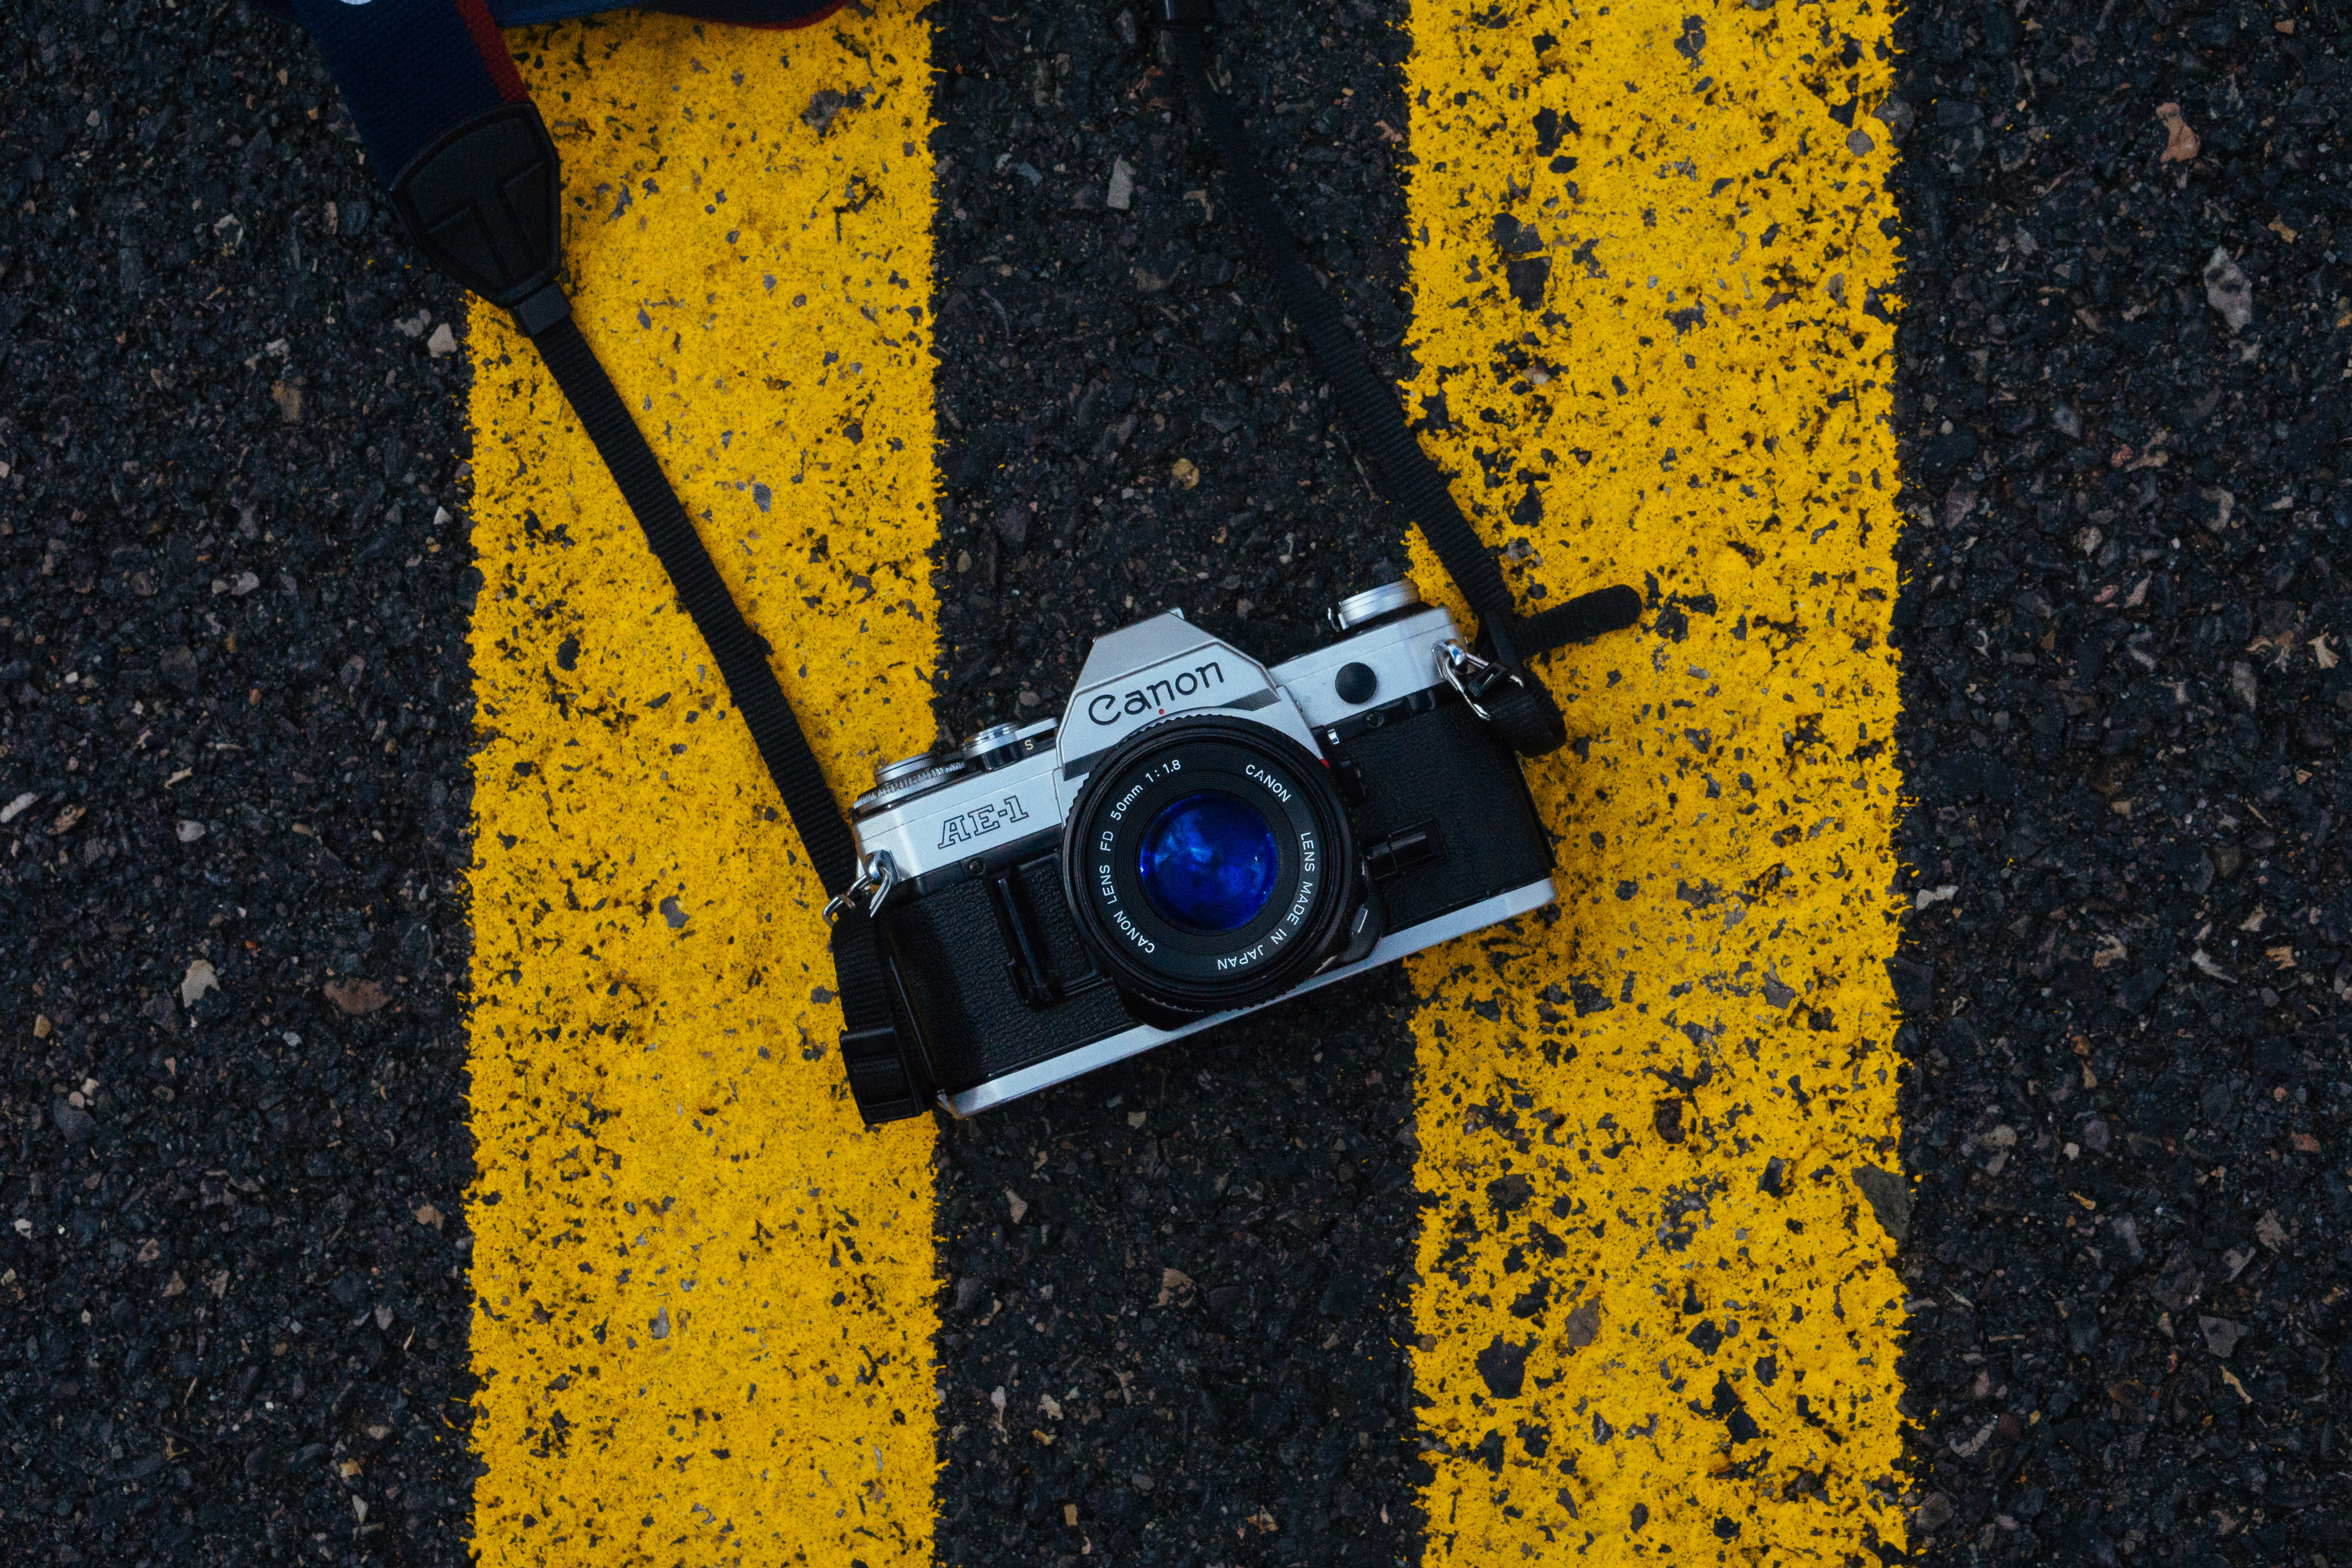 gray and black Canon SLR camera on road